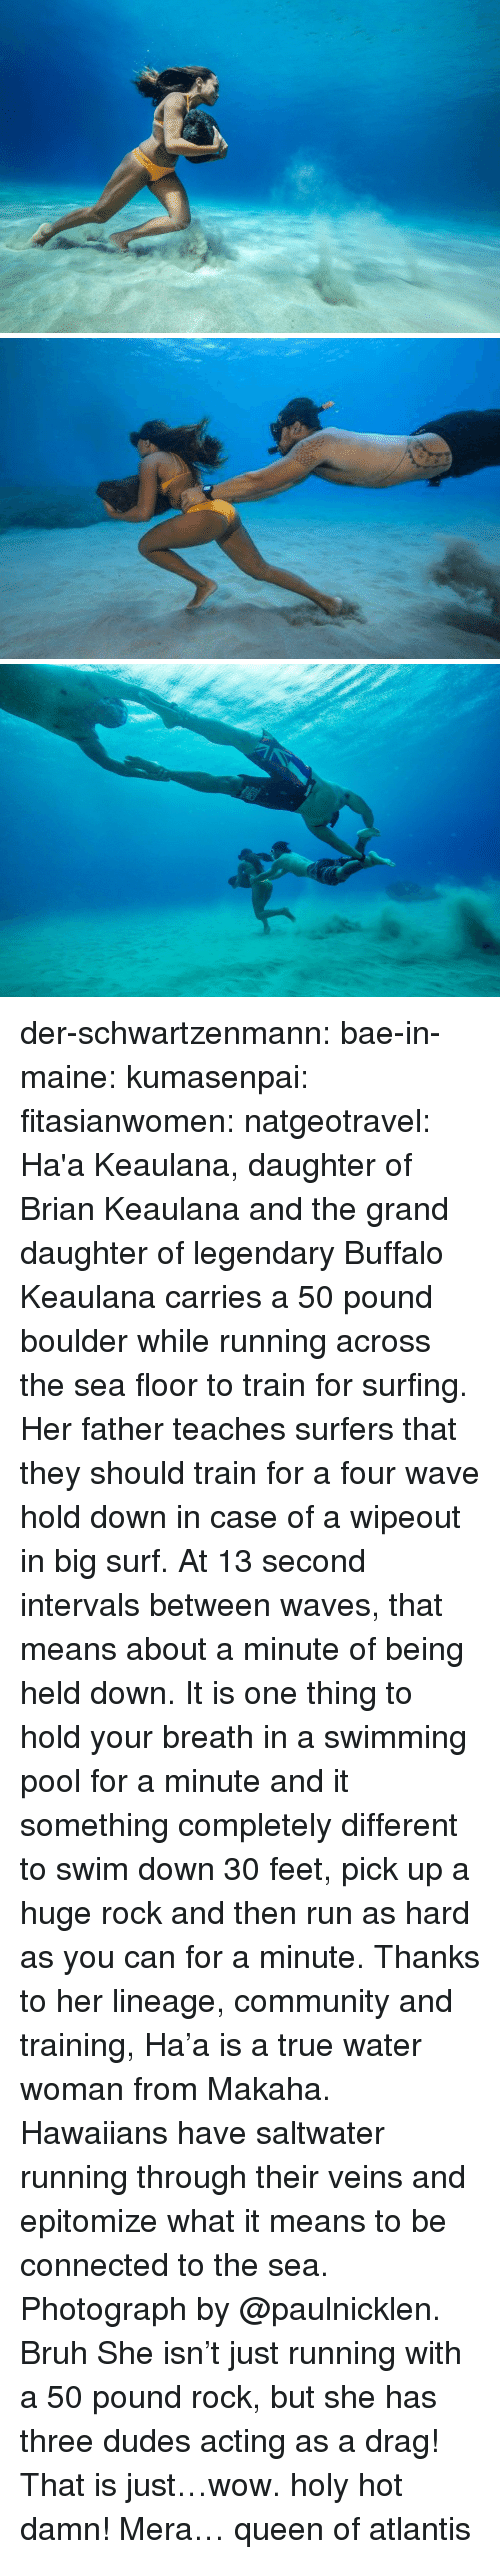 Maine: der-schwartzenmann:  bae-in-maine:  kumasenpai:  fitasianwomen:  natgeotravel: Ha'a Keaulana,  daughter of Brian Keaulana and the grand daughter of legendary Buffalo  Keaulana carries a 50 pound boulder while running across the sea floor  to train for surfing. Her father teaches surfers that they should train  for a four wave hold down in case of a wipeout in big surf. At 13 second  intervals between waves, that means about a minute of being held down.  It is one thing to hold your breath in a swimming pool for a minute and  it something completely different to swim down 30 feet, pick up a huge  rock and then run as hard as you can for a minute. Thanks to her  lineage, community and training, Ha'a is a true water woman from Makaha.  Hawaiians have saltwater running through their veins and epitomize what  it means to be connected to the sea.   Photograph by @paulnicklen. Bruh   She isn't just running with a 50 pound rock, but she has three dudes acting as a drag! That is just…wow. holy hot damn!   Mera… queen of atlantis